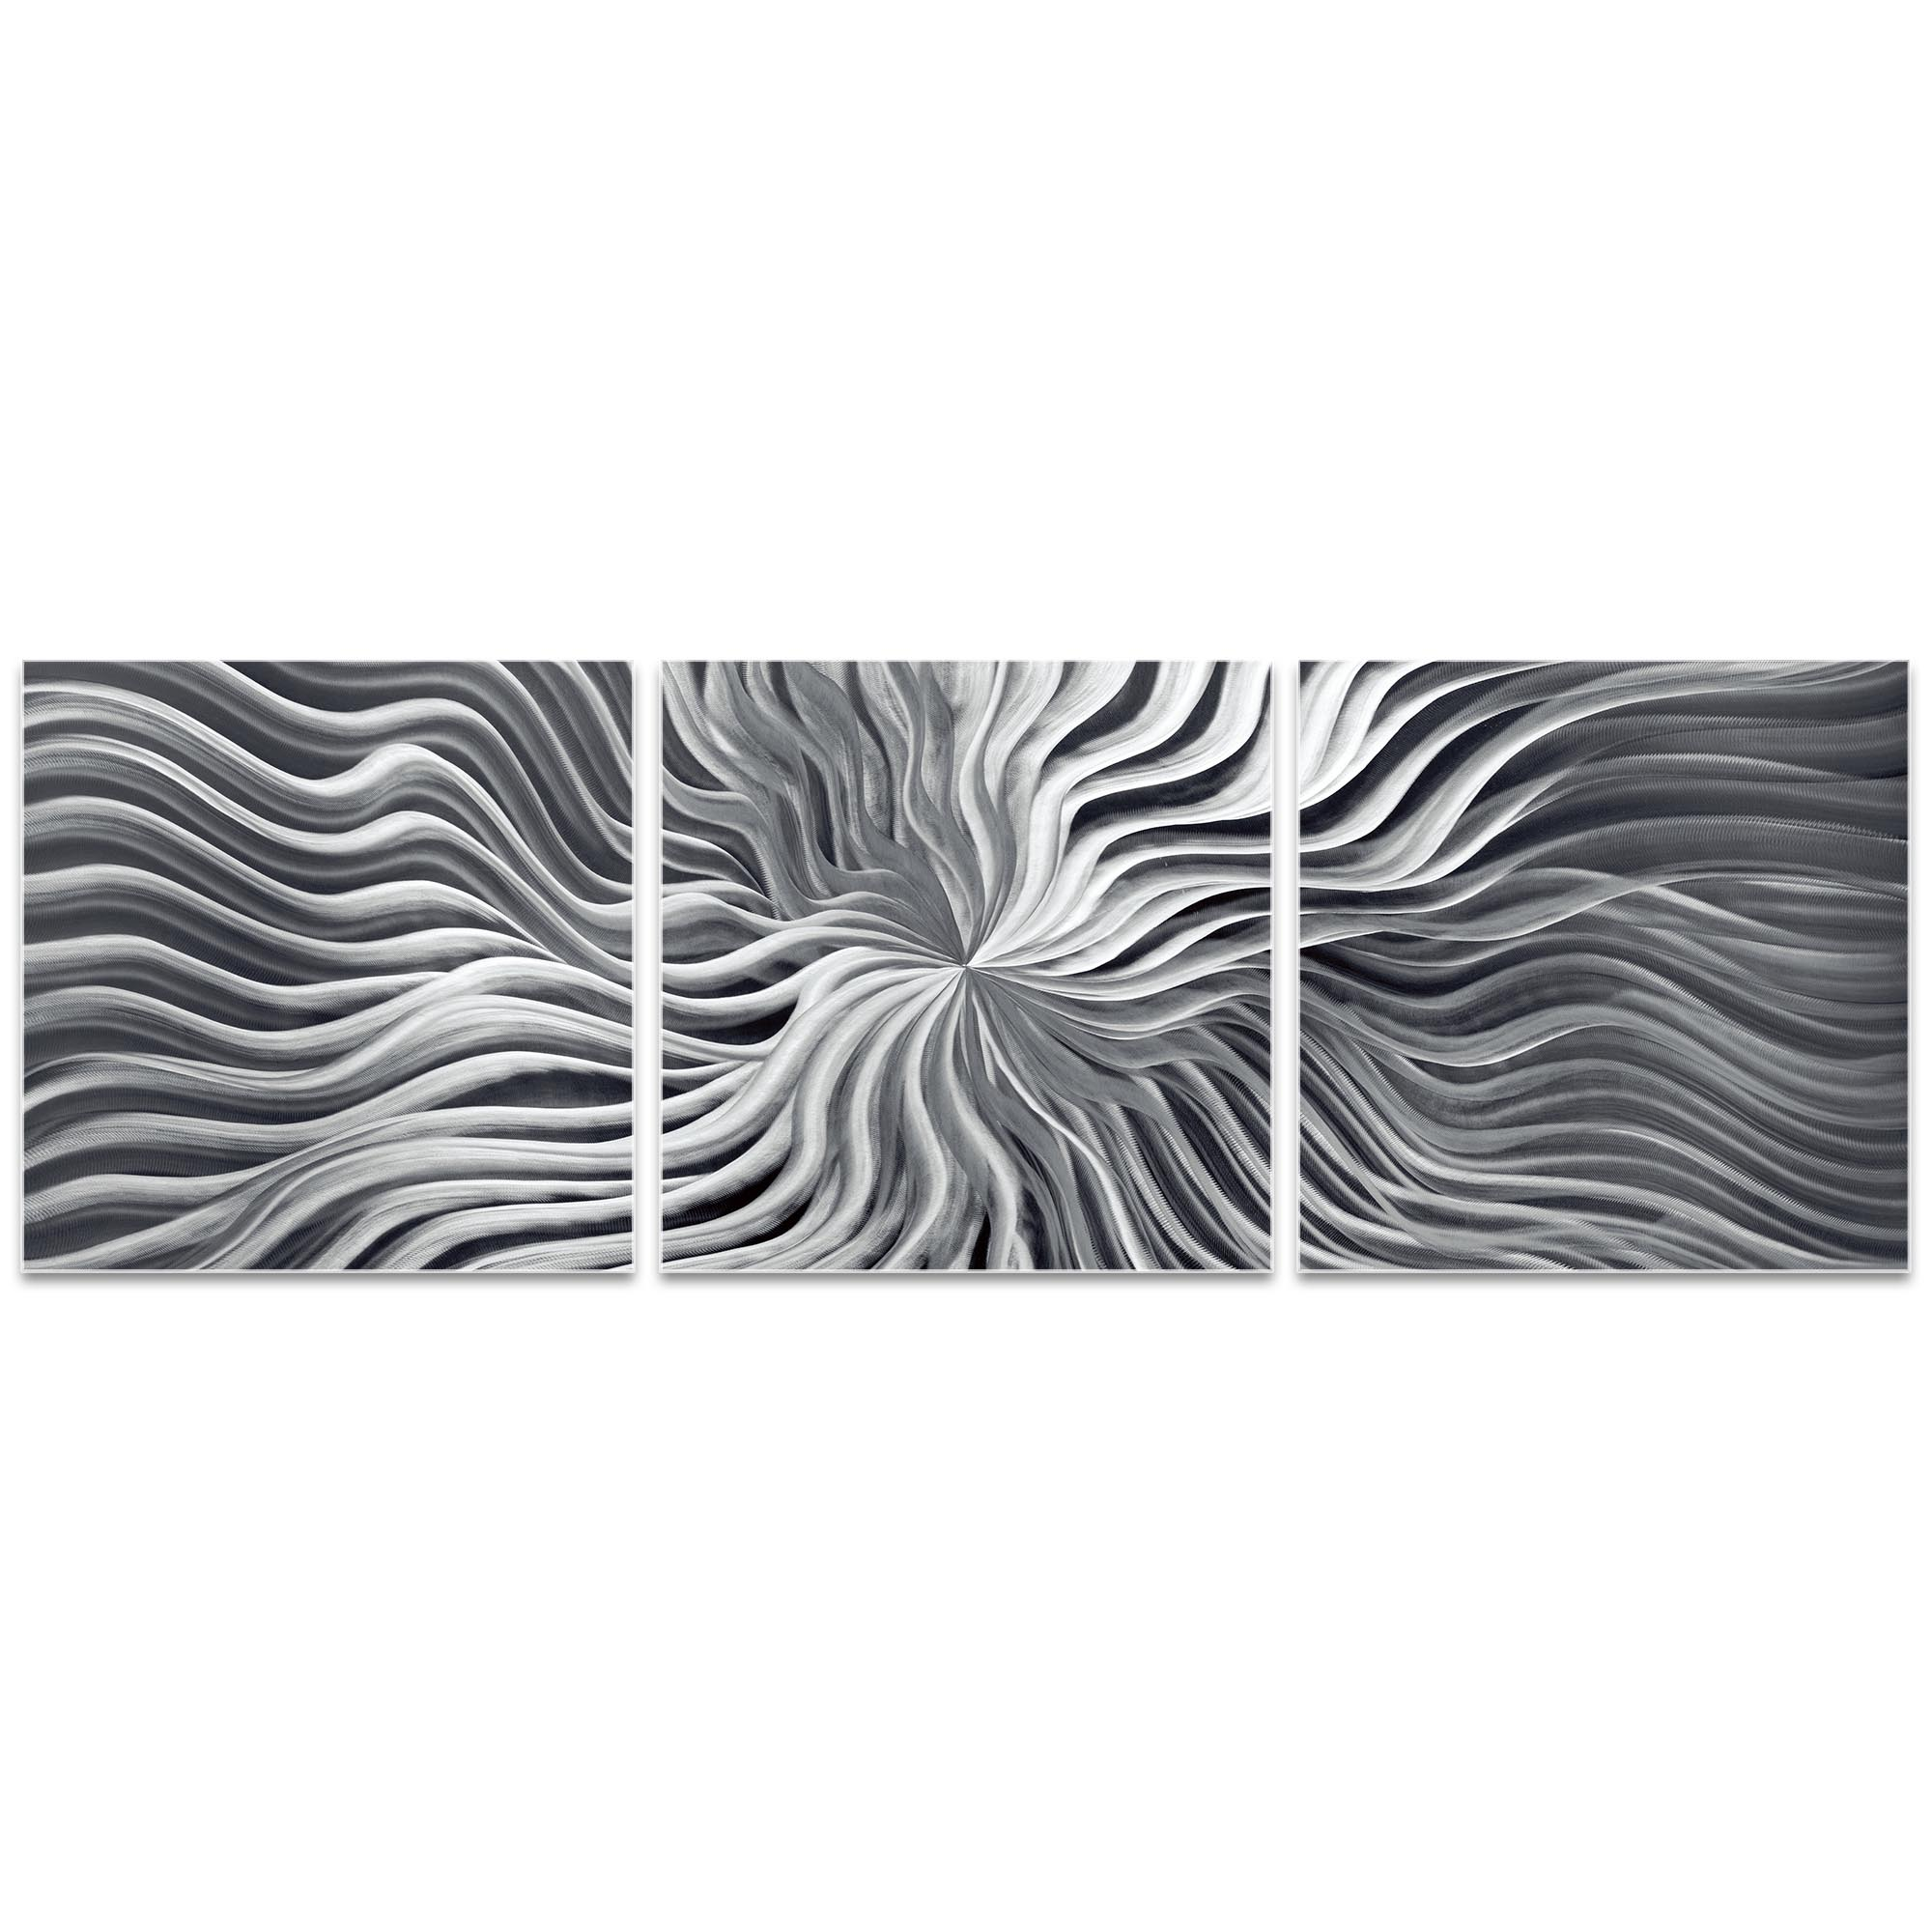 Flexure Triptych Large 70x22in. Metal or Acrylic Contemporary Decor - Image 2